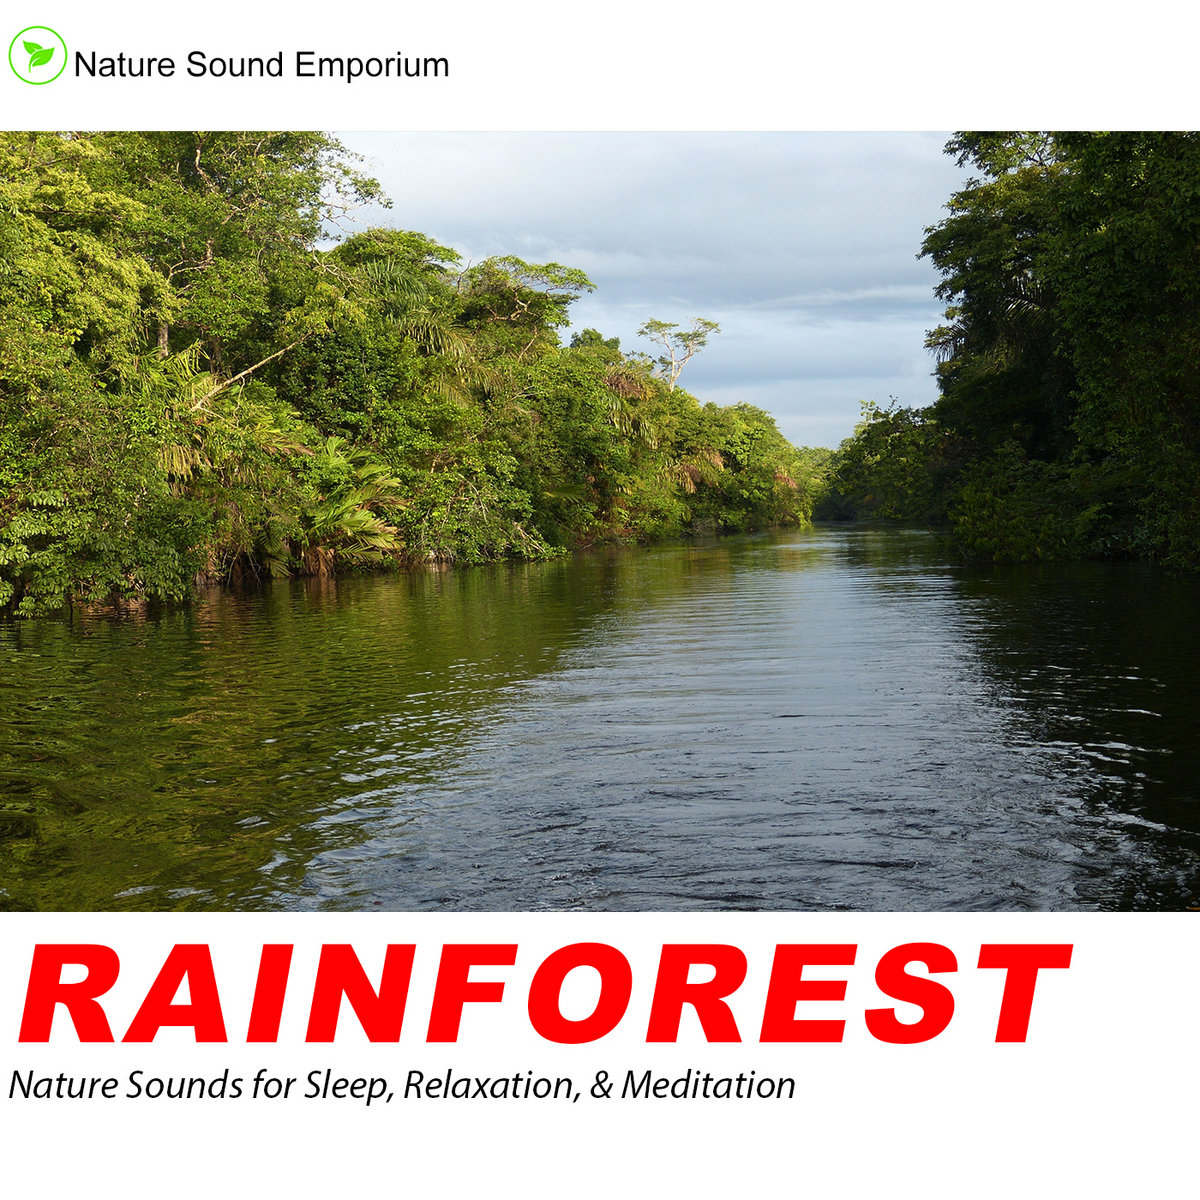 Rainforest Sounds - Nature Sounds for Relaxation, Meditation